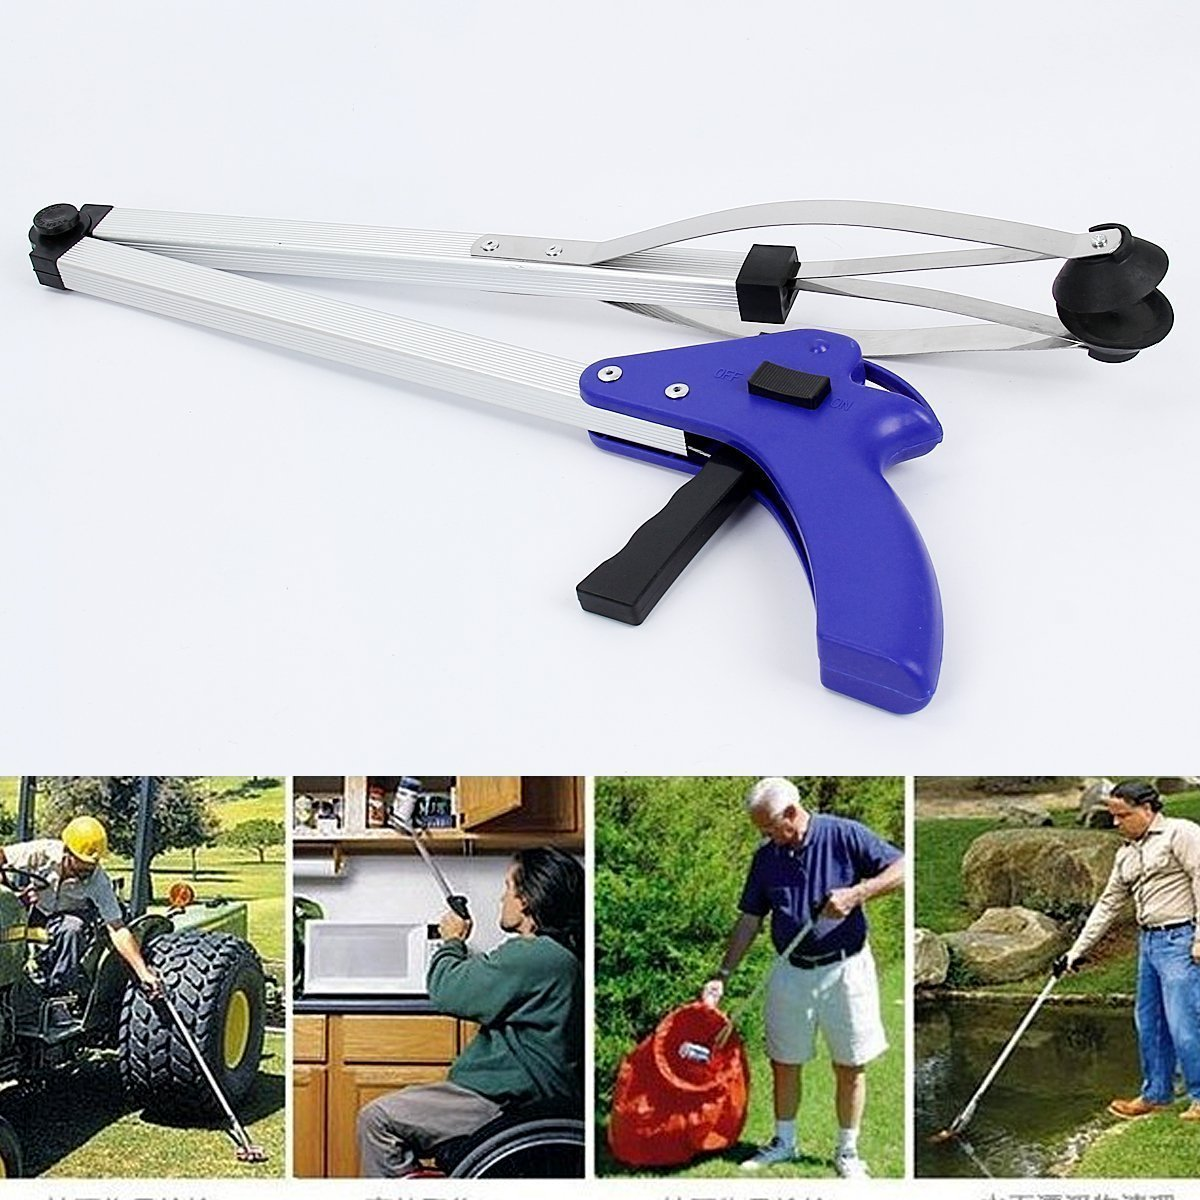 Multifunctional Folding Gripper-50% OFF ONLY TODAY!!